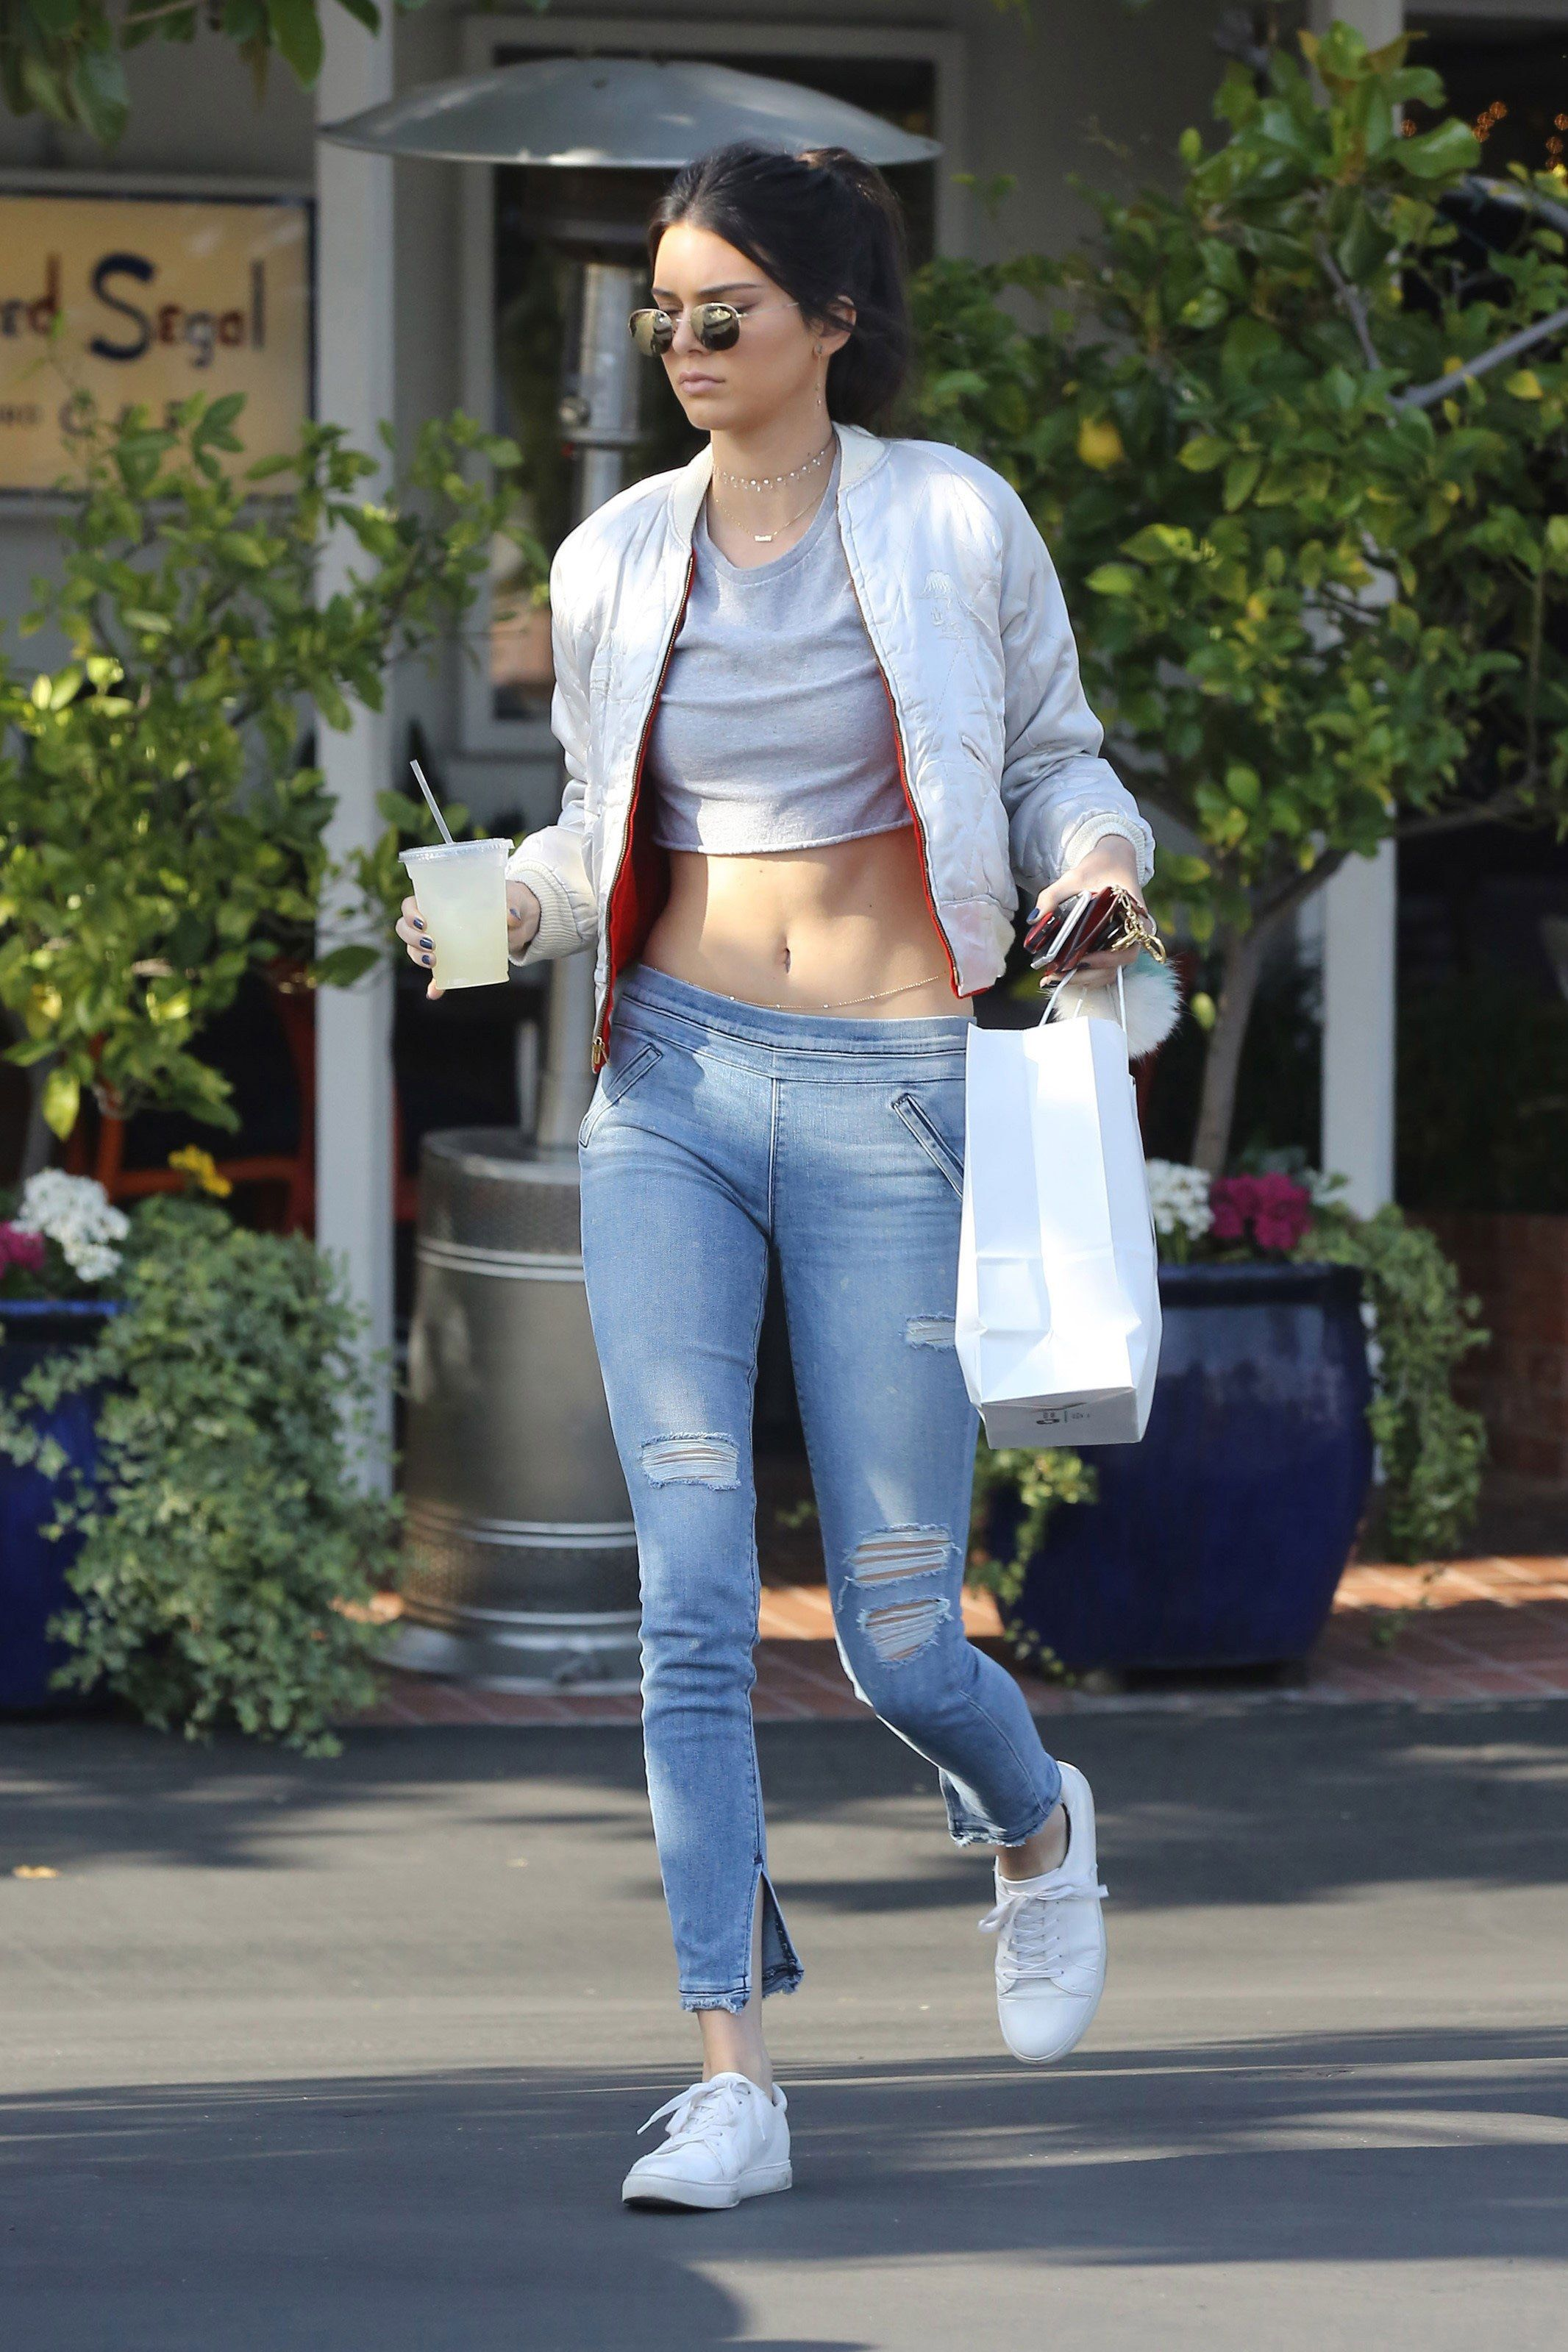 Kendall Jenner Just Wore the Hottest Spring Accessory—and